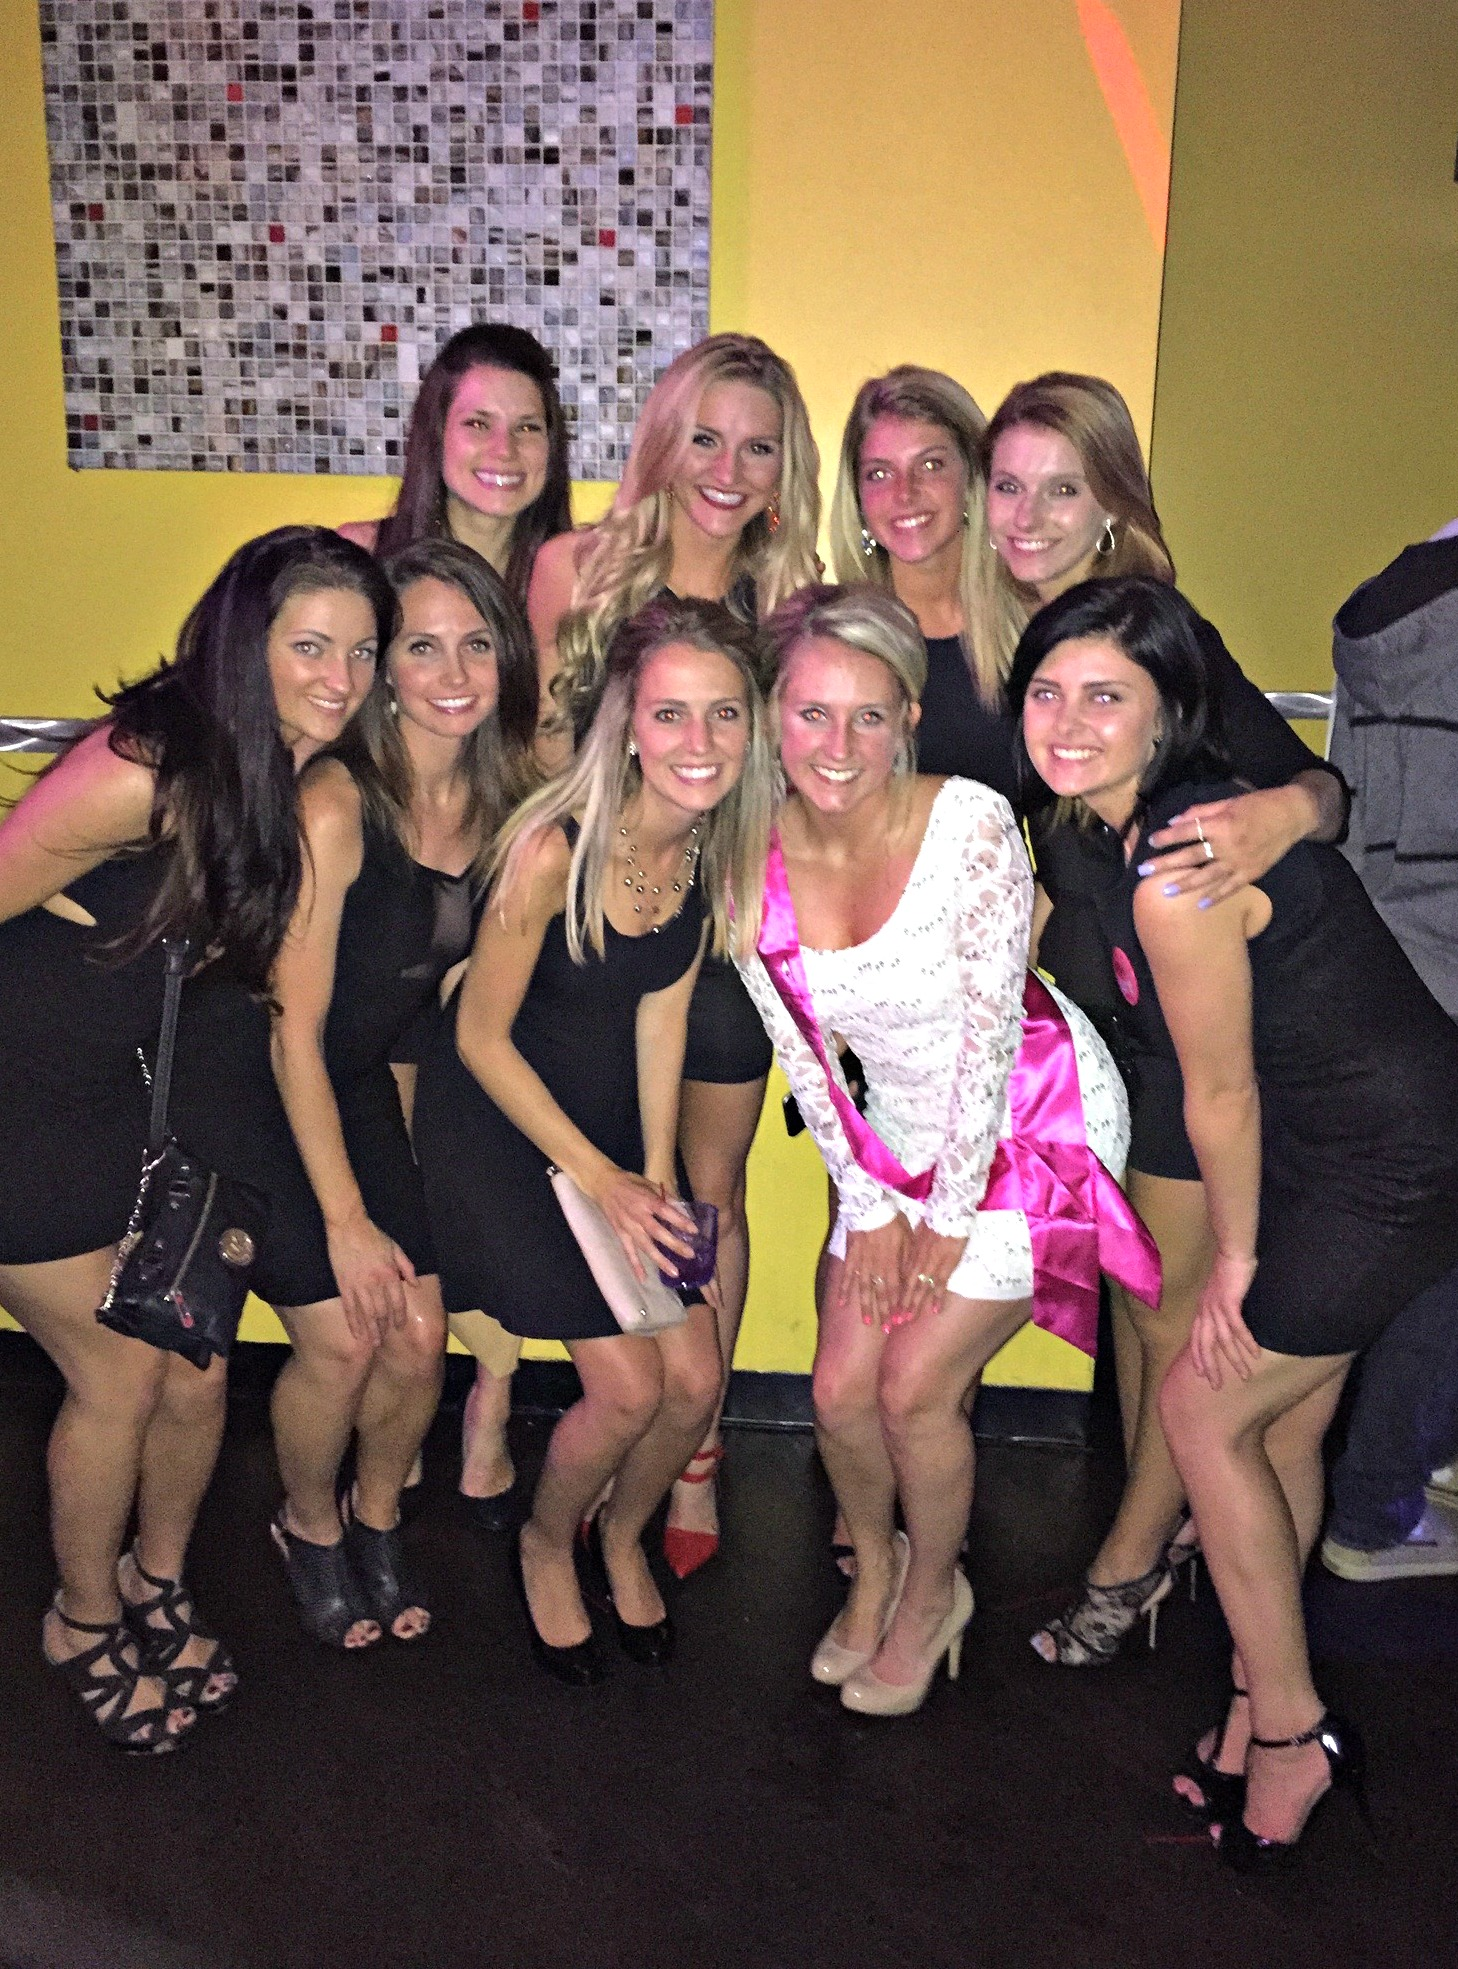 amanda's bachelorette party